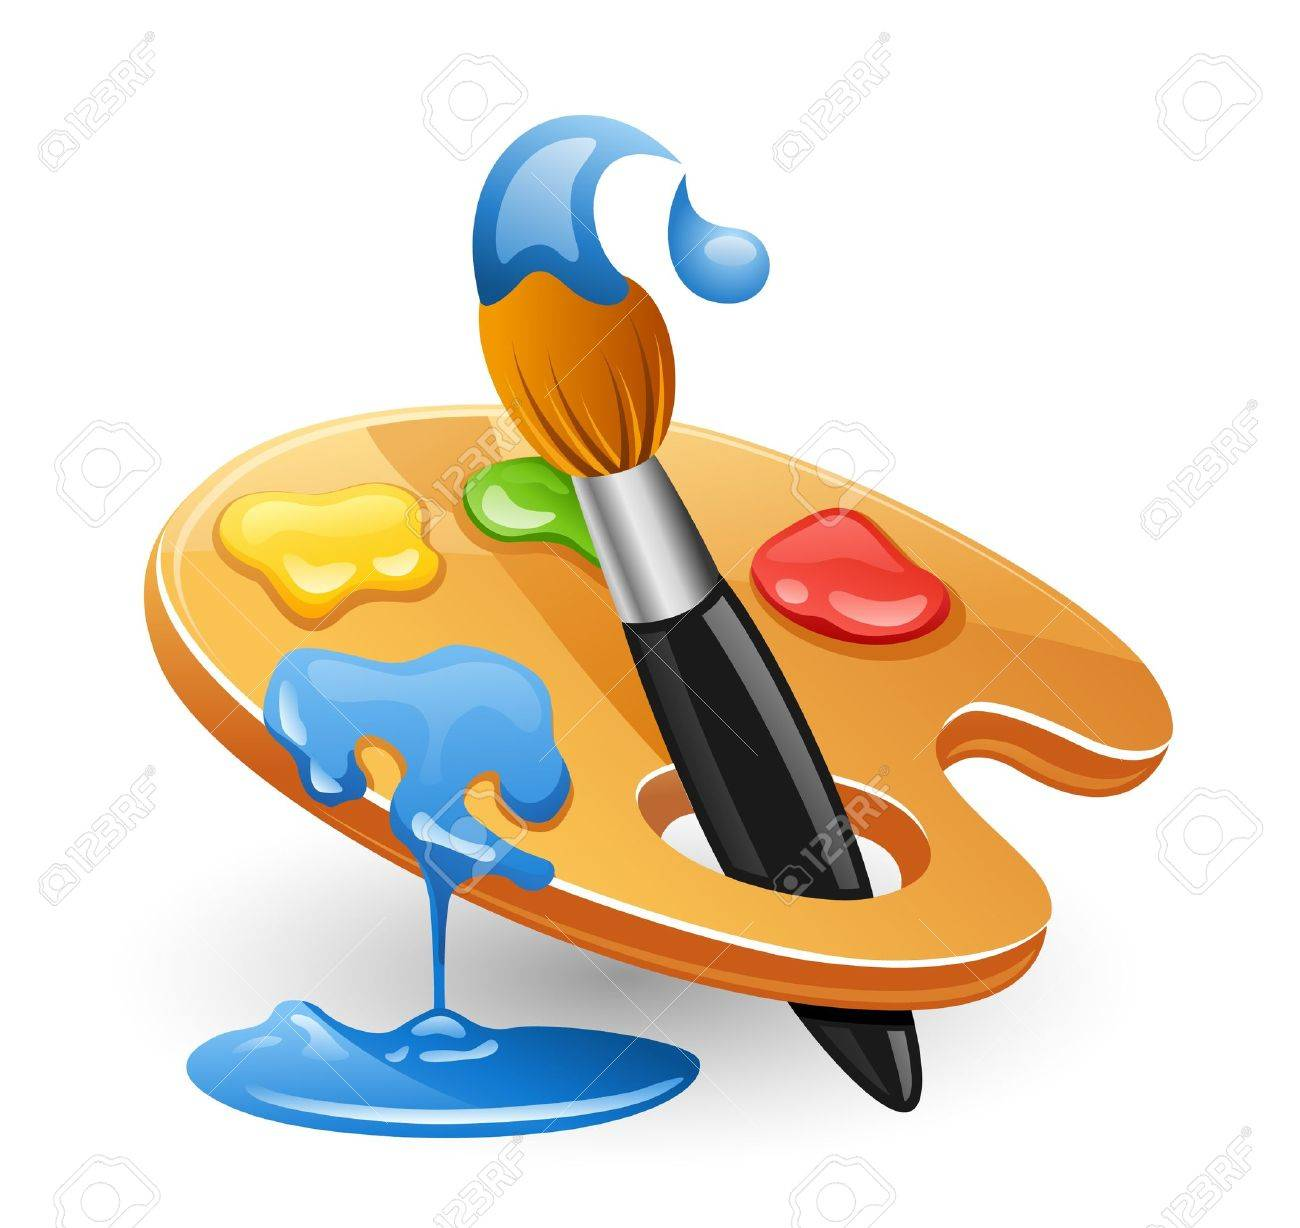 Palette and paintbrush. Isolated on white background. Stock Vector - 10233403